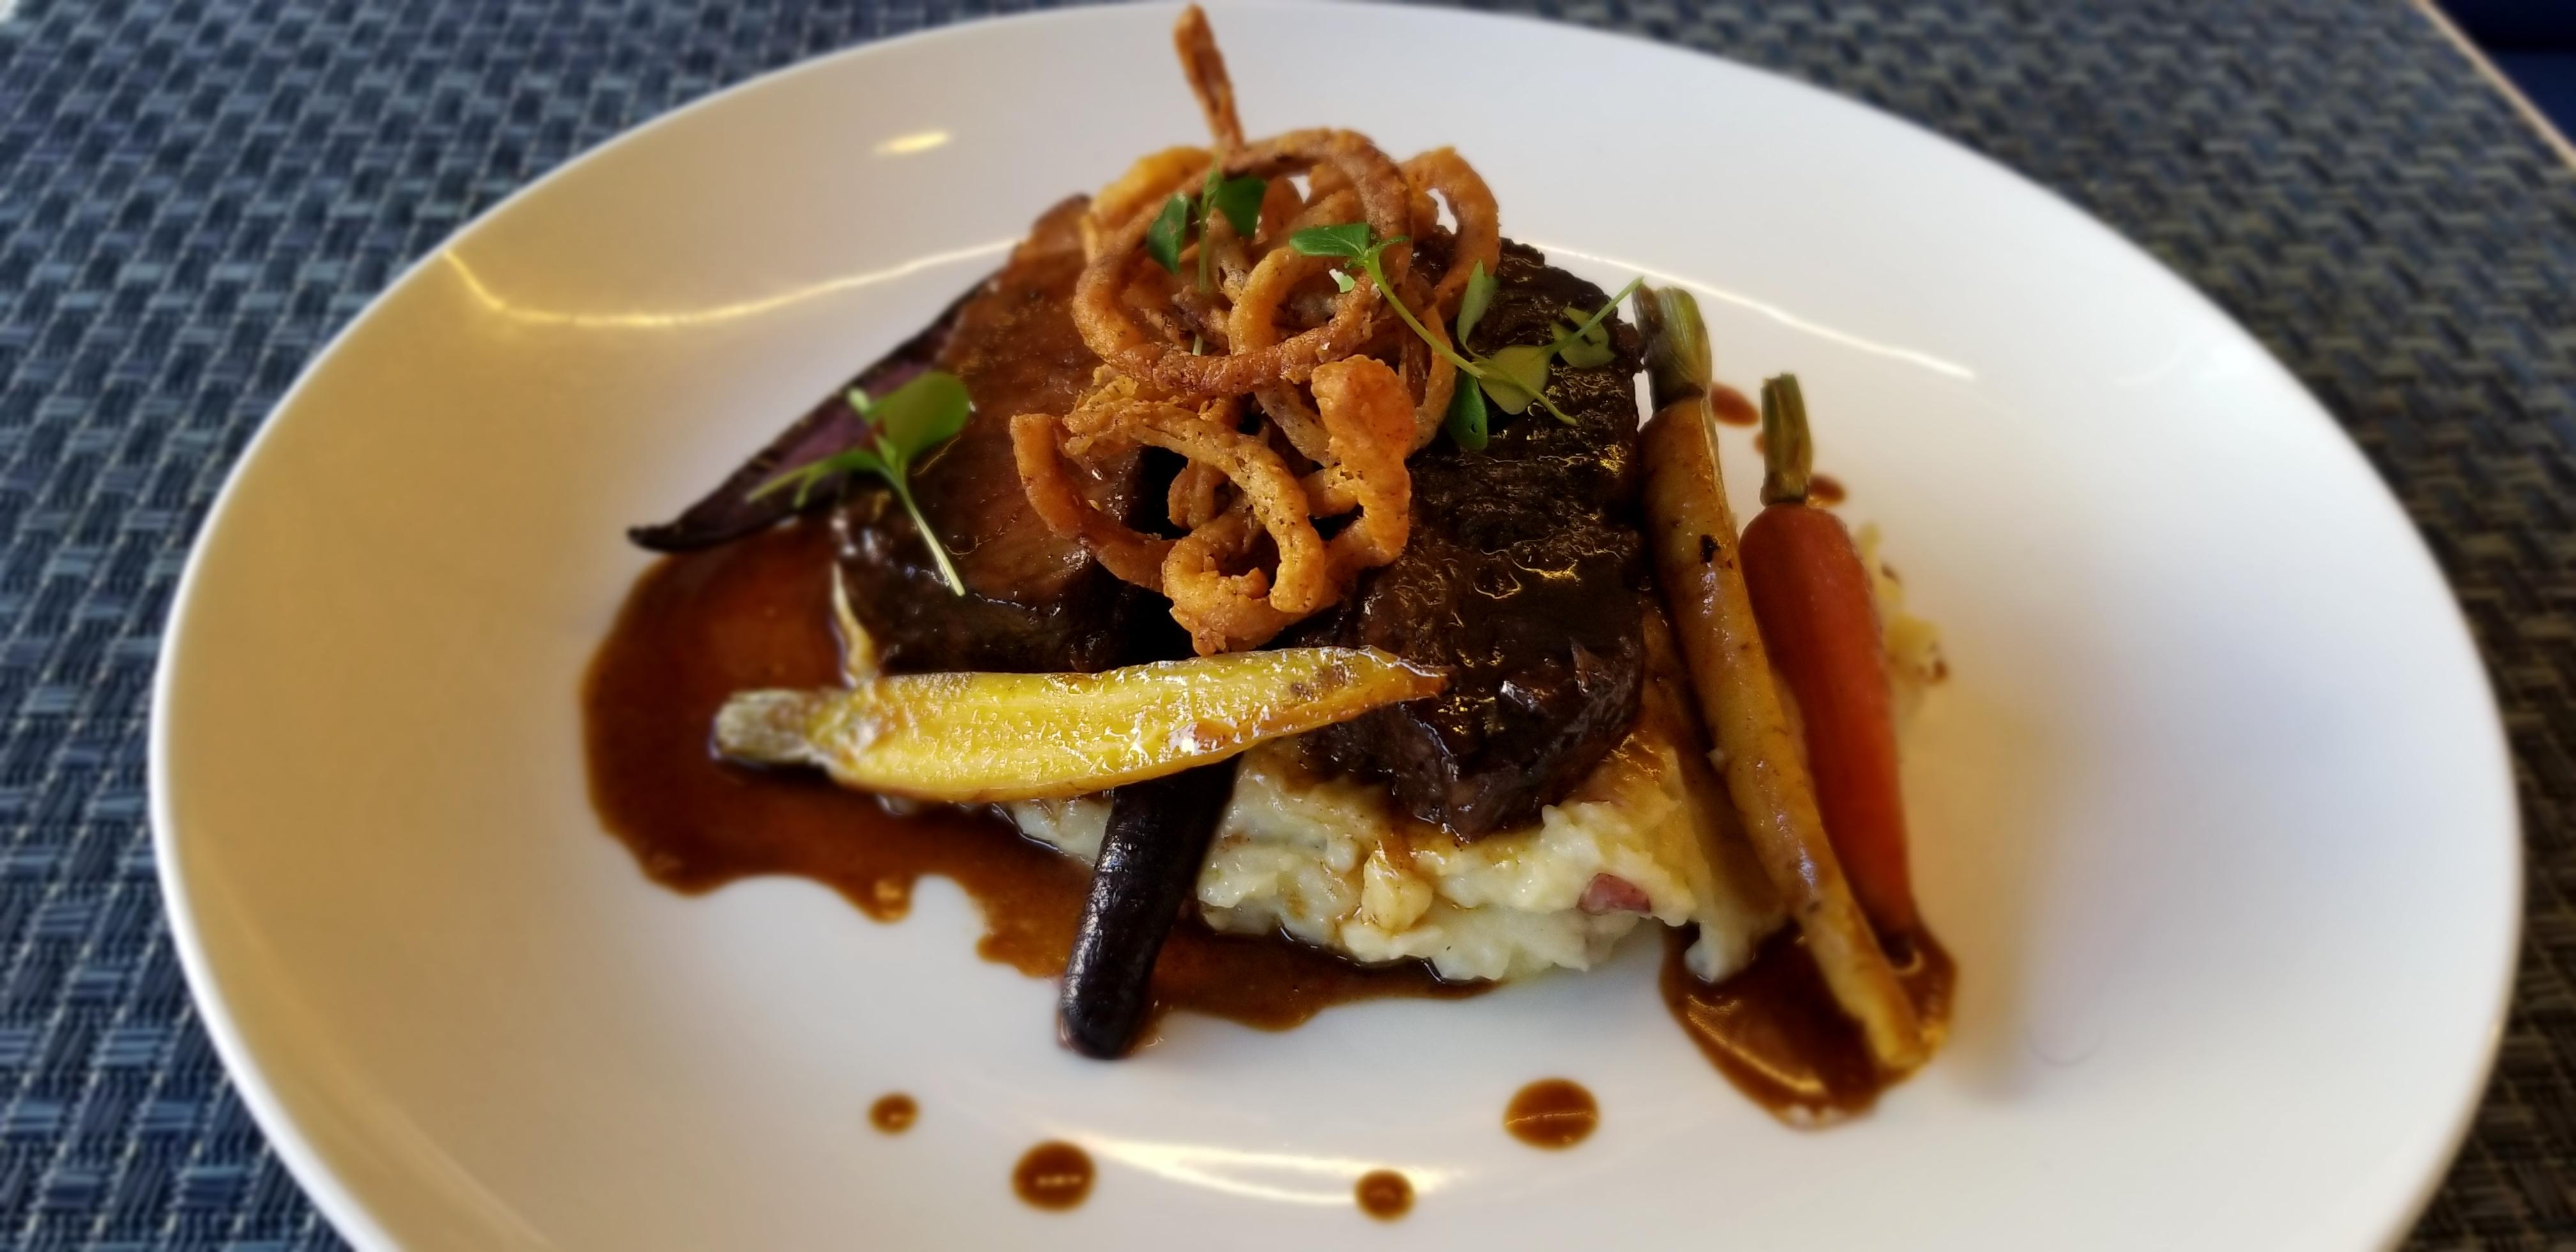 Short Ribs with Bleu Cheese Mashed Potatoes, Baby Carrots, Red Wine Demi Glace and Fried Shallots (Photo courtesy: All Set Restaurant &amp;amp; Bar)<p></p>